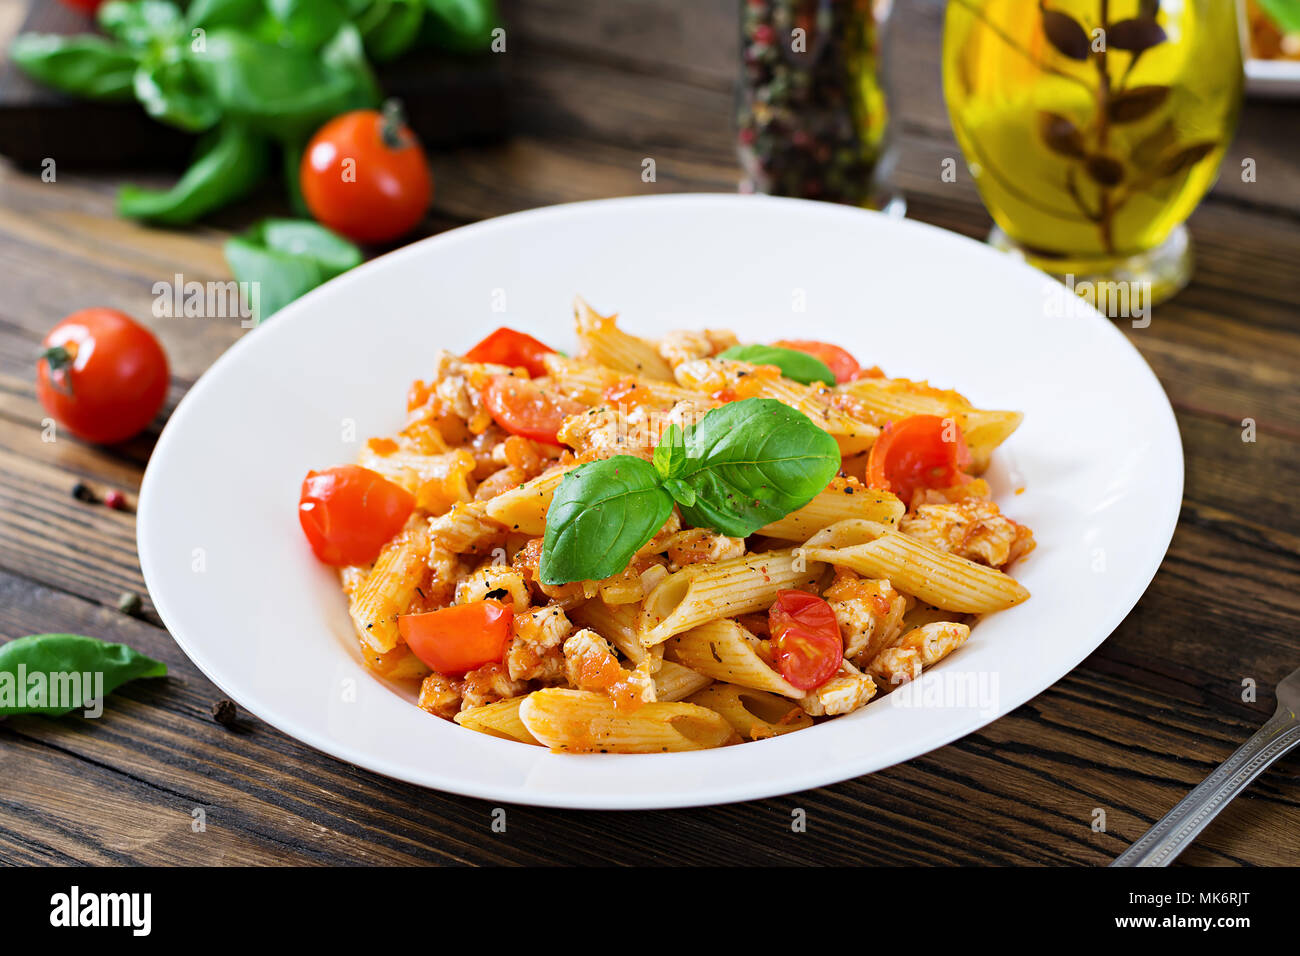 Penne pasta in tomato sauce with chicken, tomatoes, decorated with basil on a wooden table. Italian food. Pasta Bolognese. - Stock Image